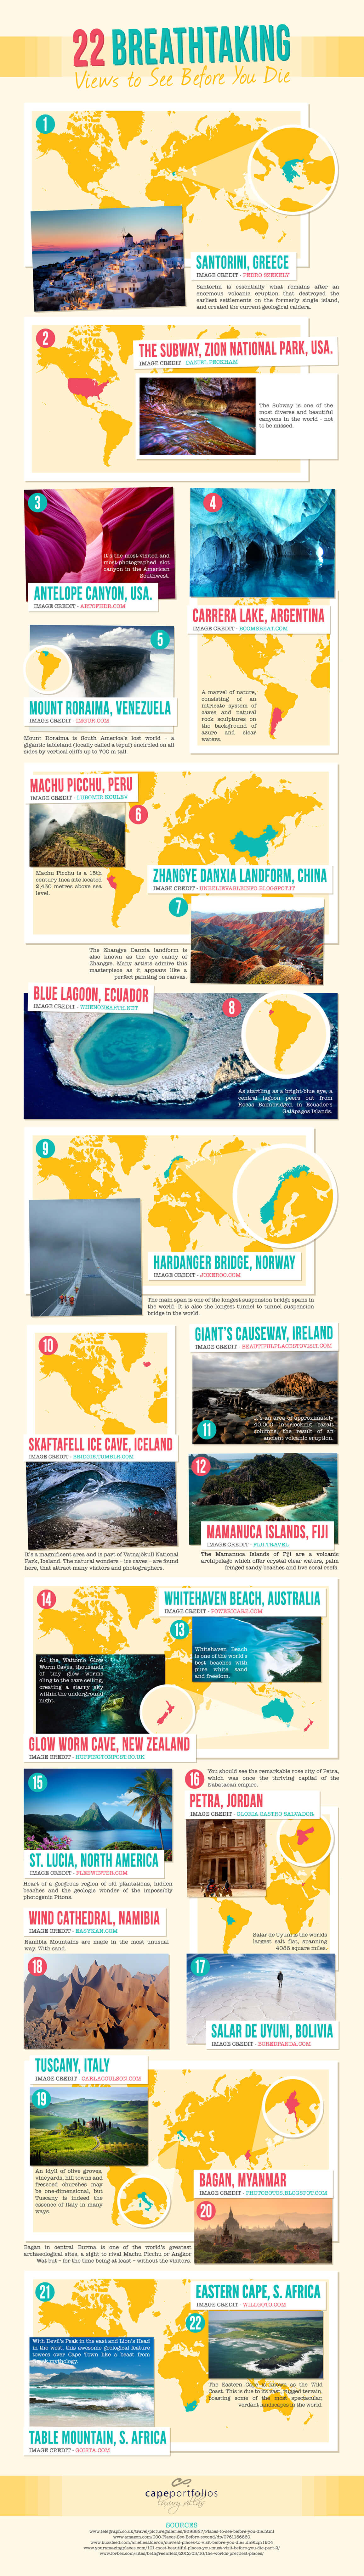 22-most-breathtaking-views-in-the-world-infographic